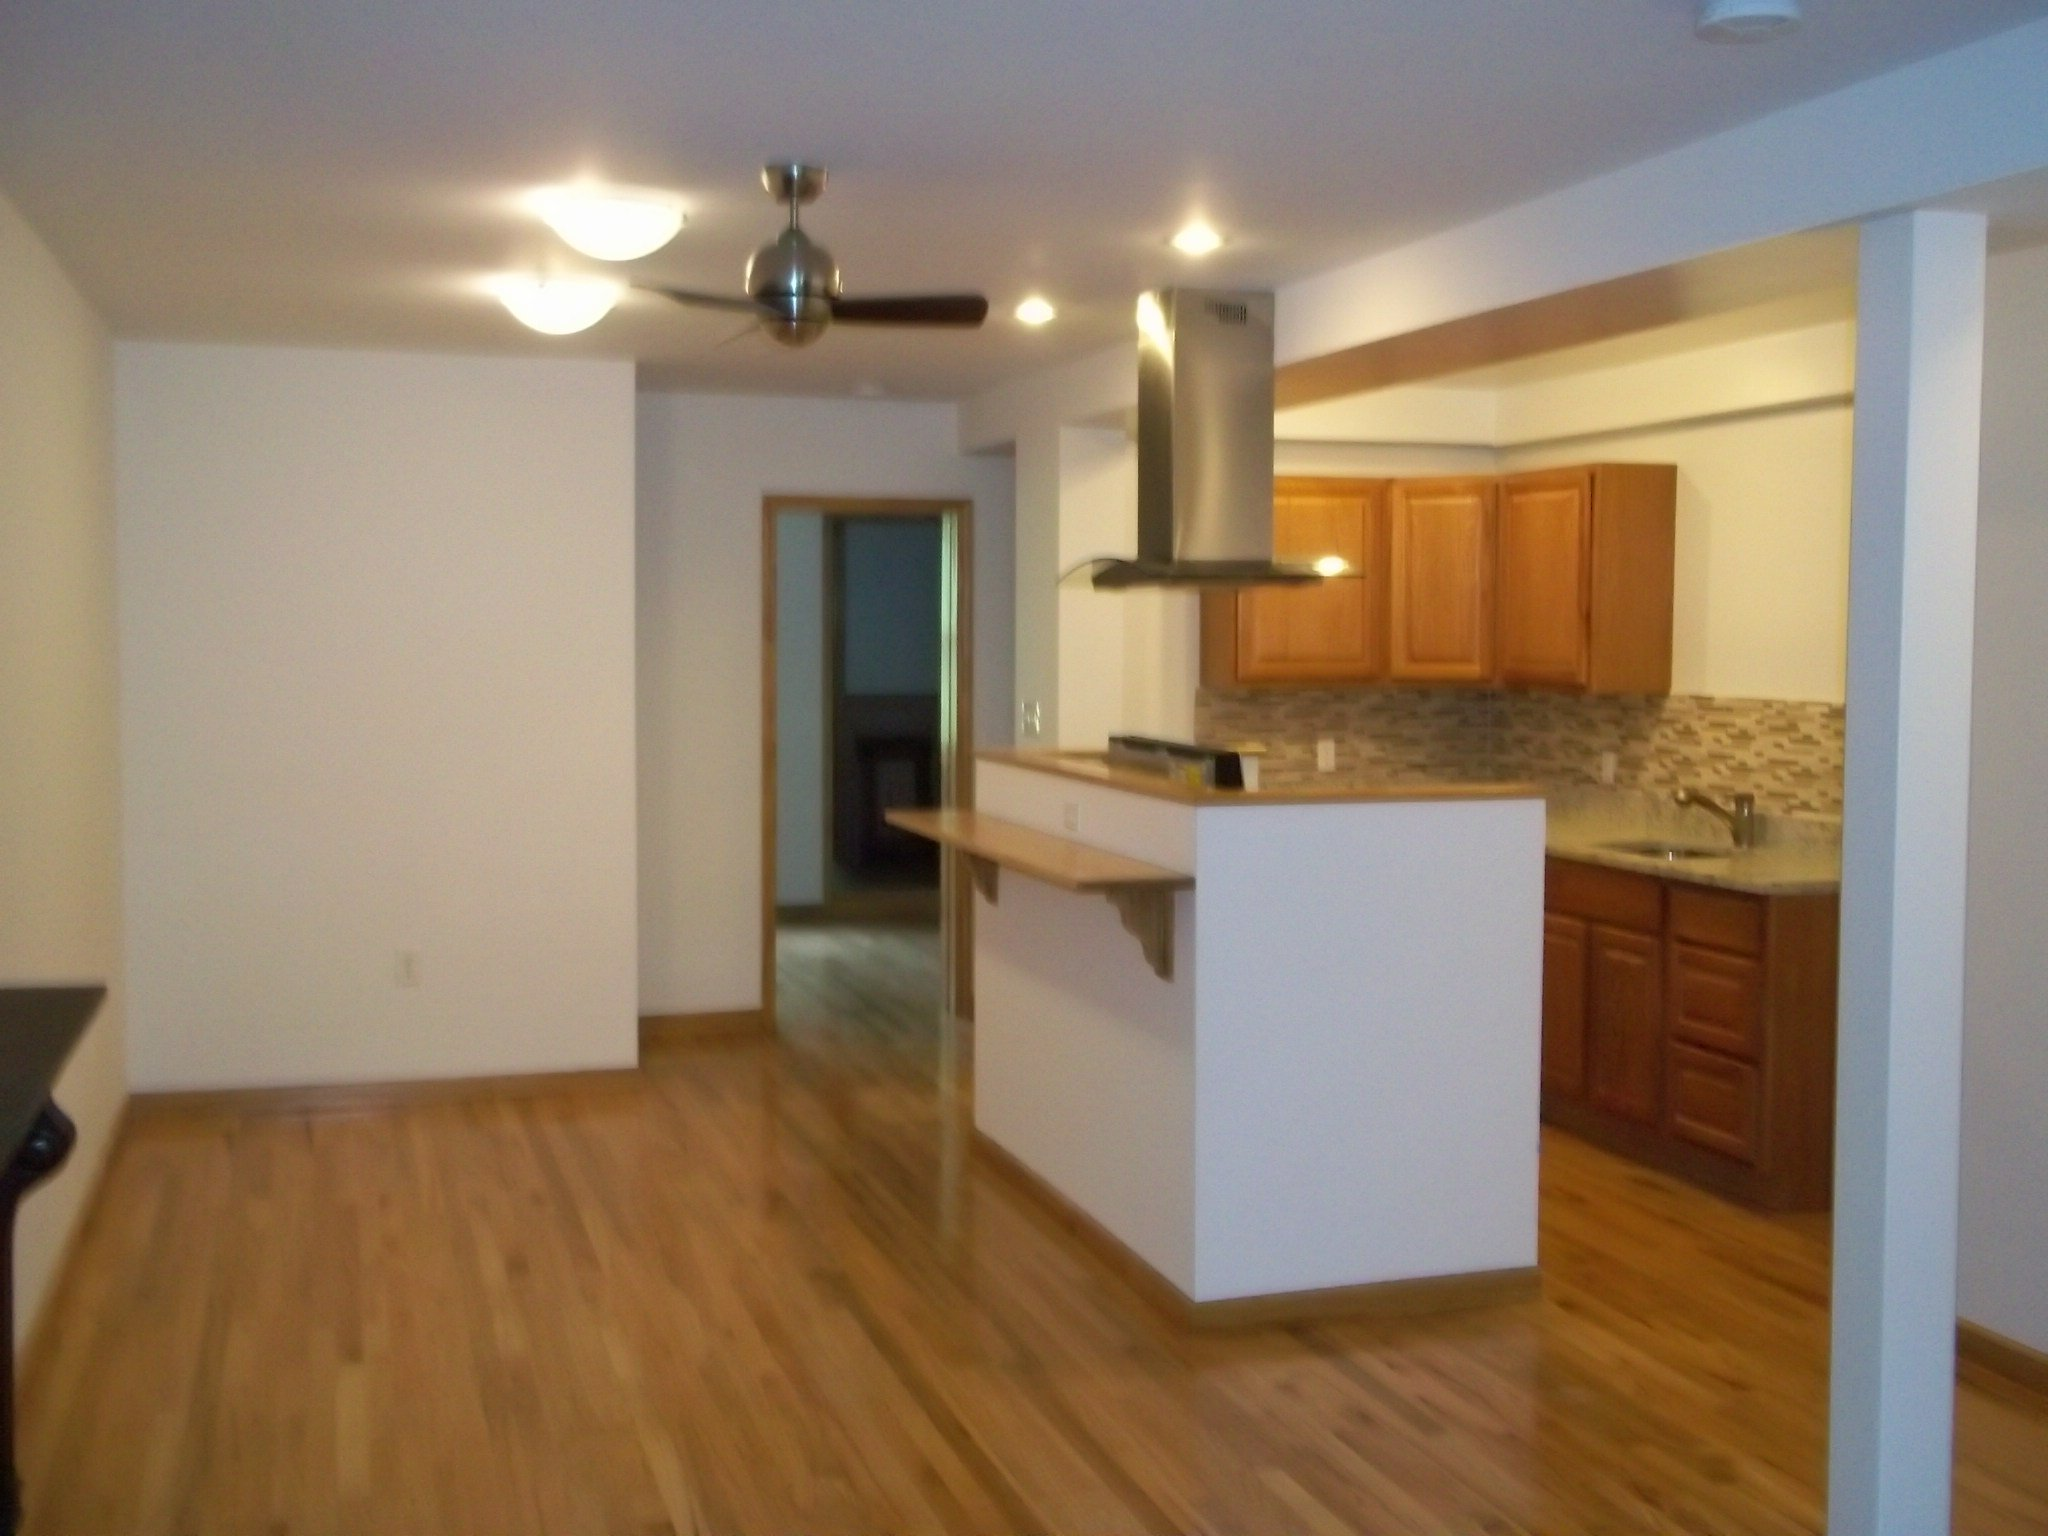 Stuyvesant heights 1 bedroom apartment for rent brooklyn for I bedroom apartment